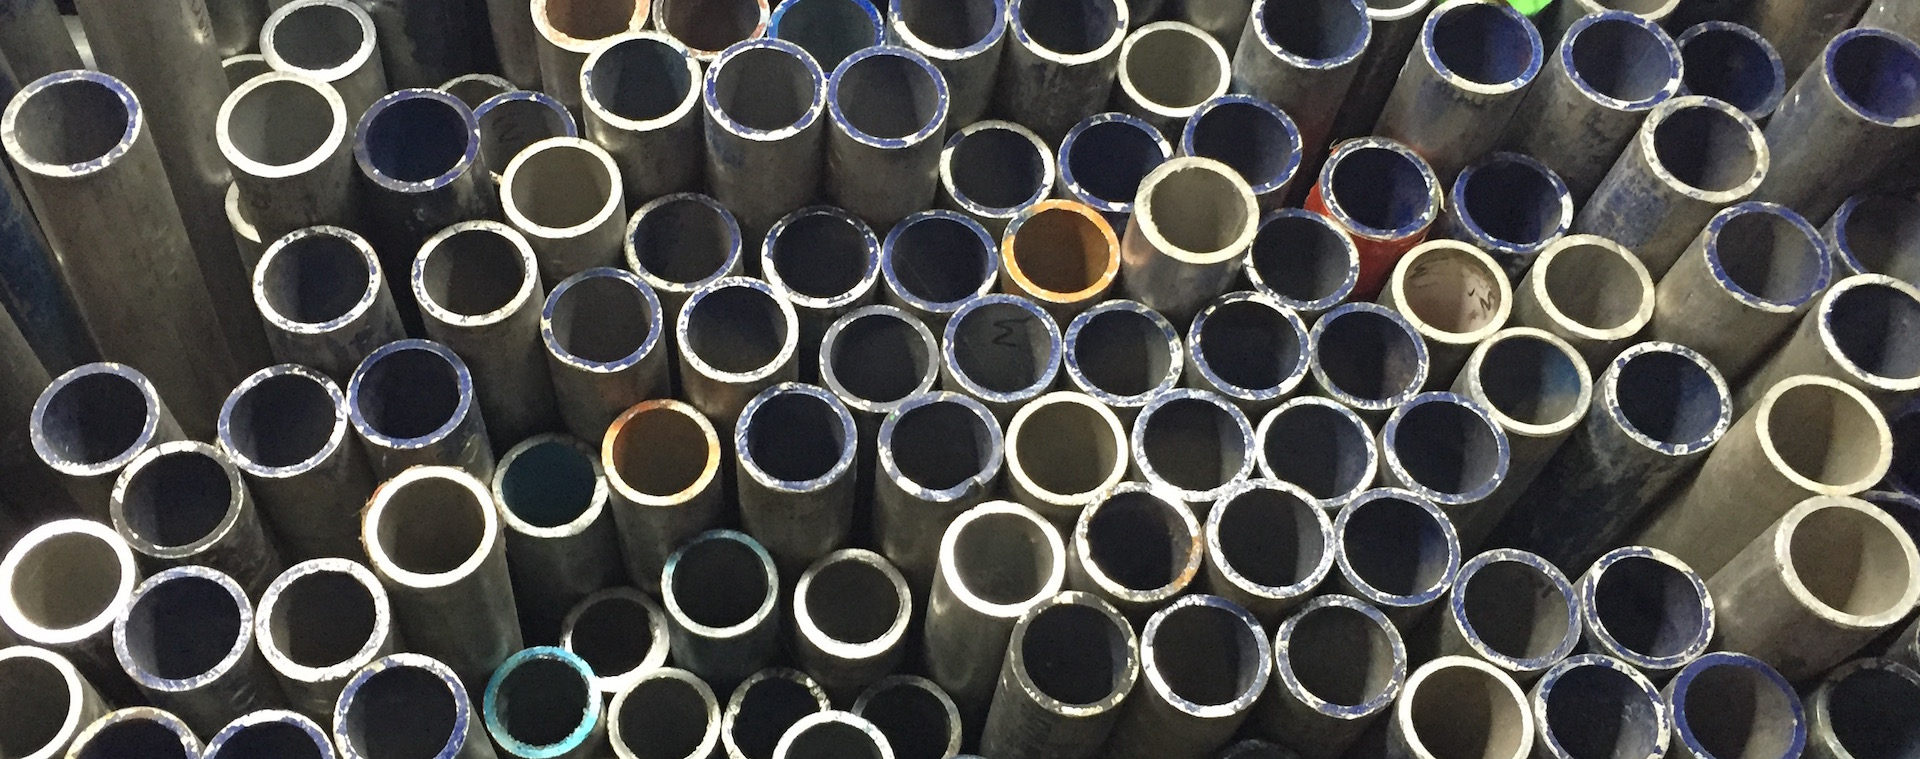 Alloy Tubes in every size from 0.5m to 6.0m.